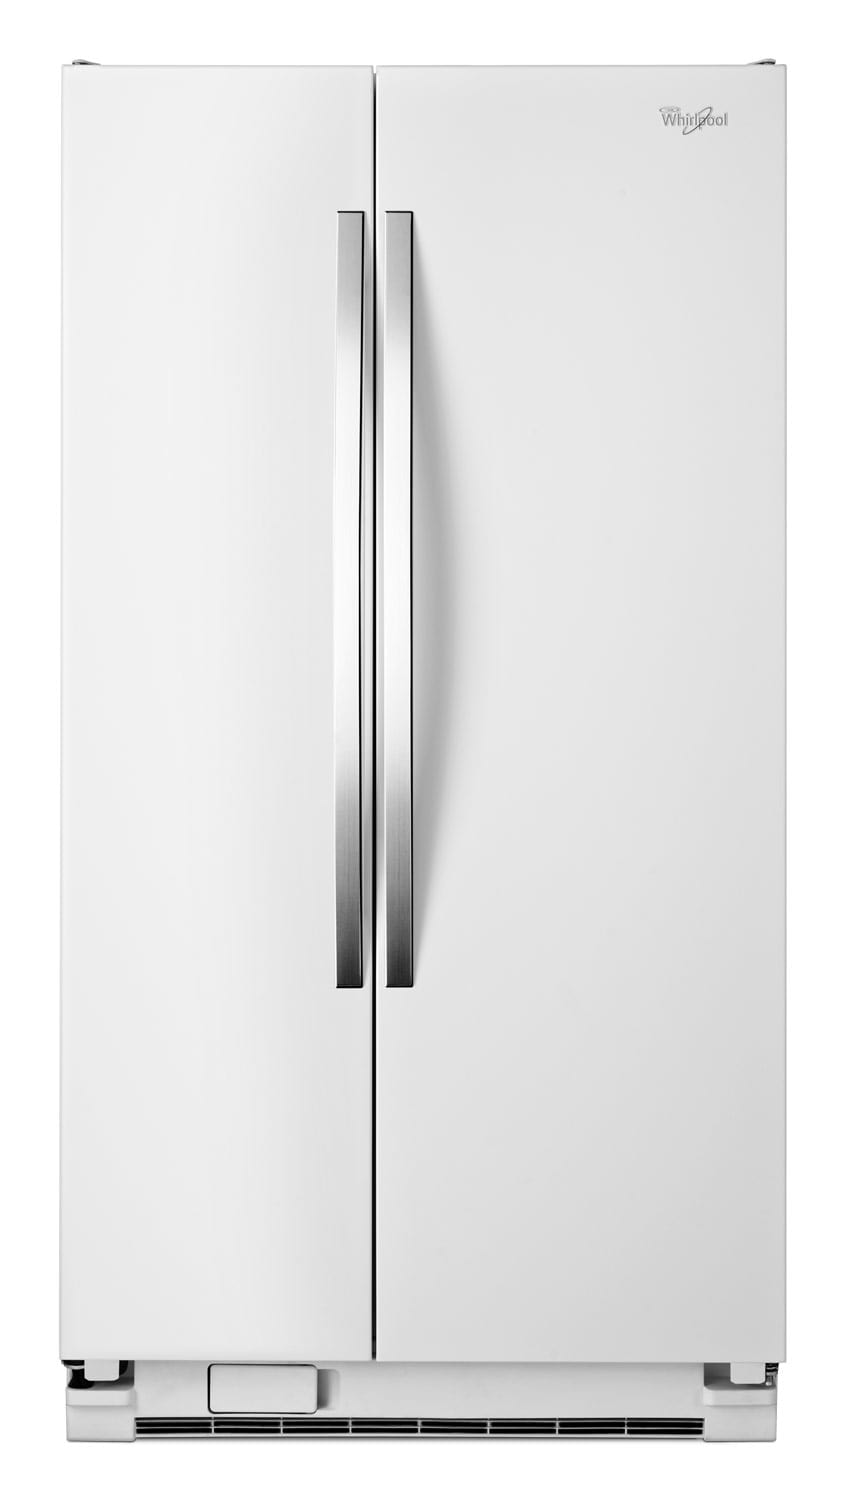 Refrigerators and Freezers - Whirlpool 21 Cu. Ft. Side-by-Side Refrigerator – WRS322FNAH